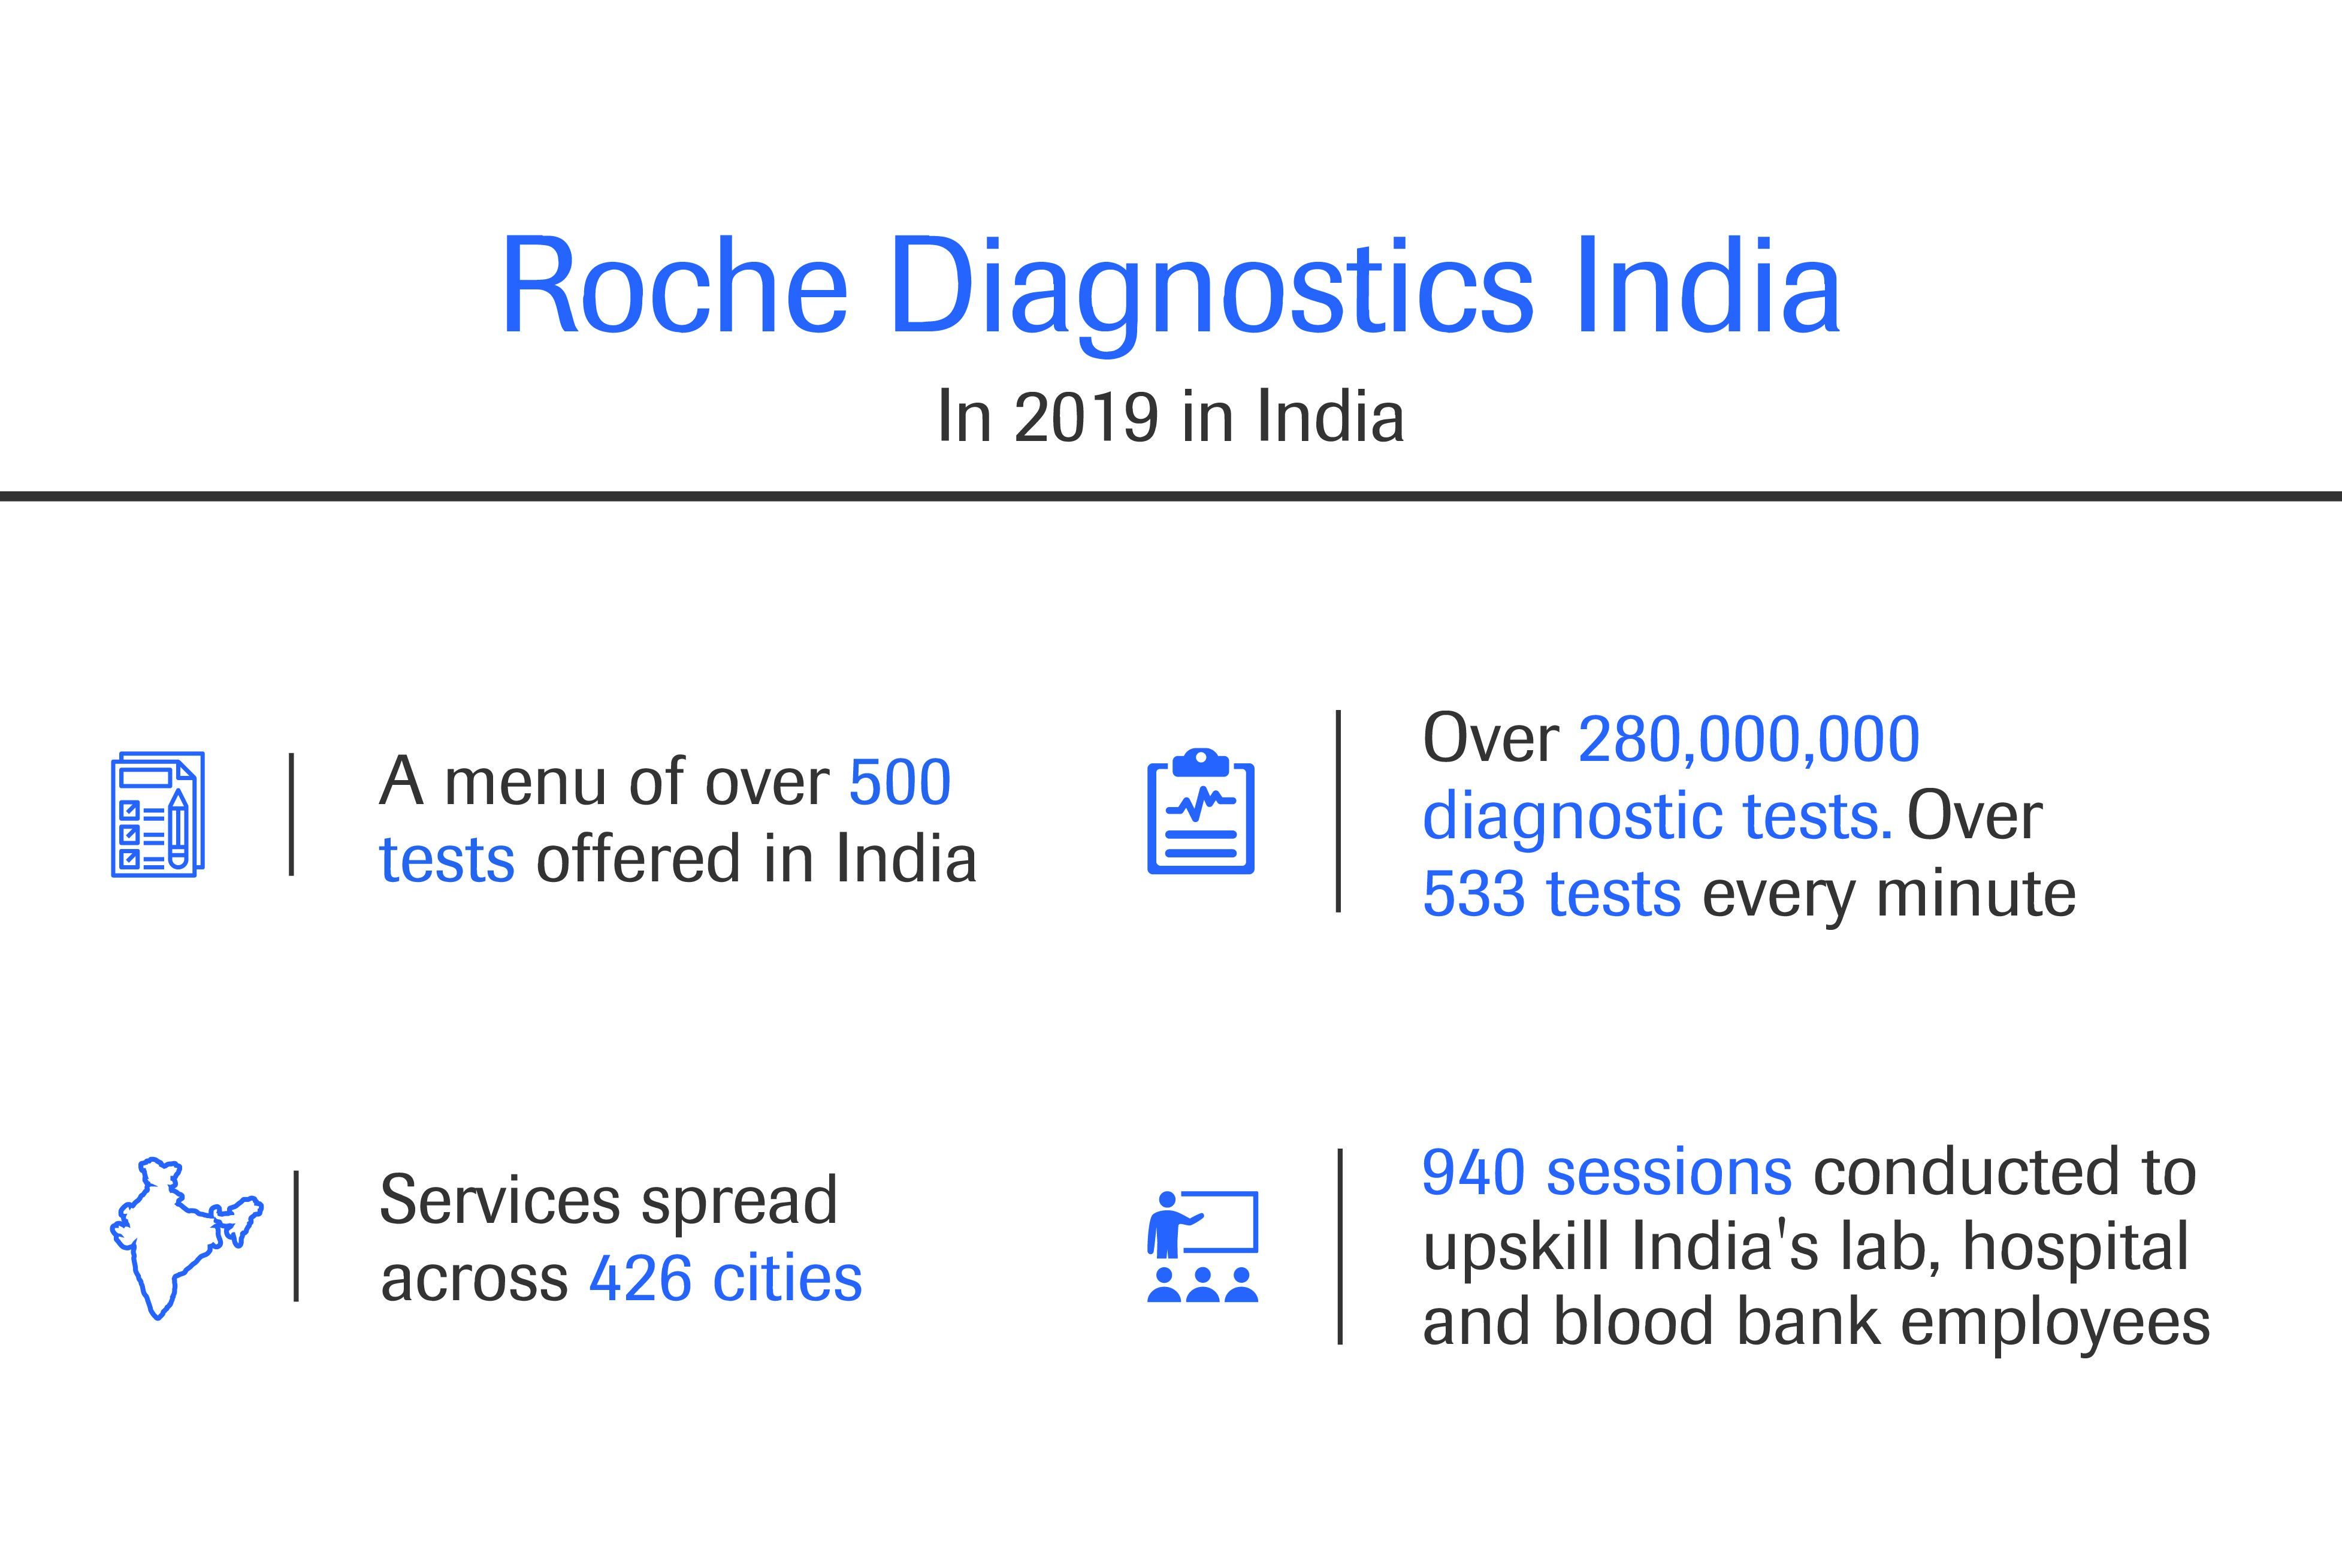 Roche Diagnostics India in numbers